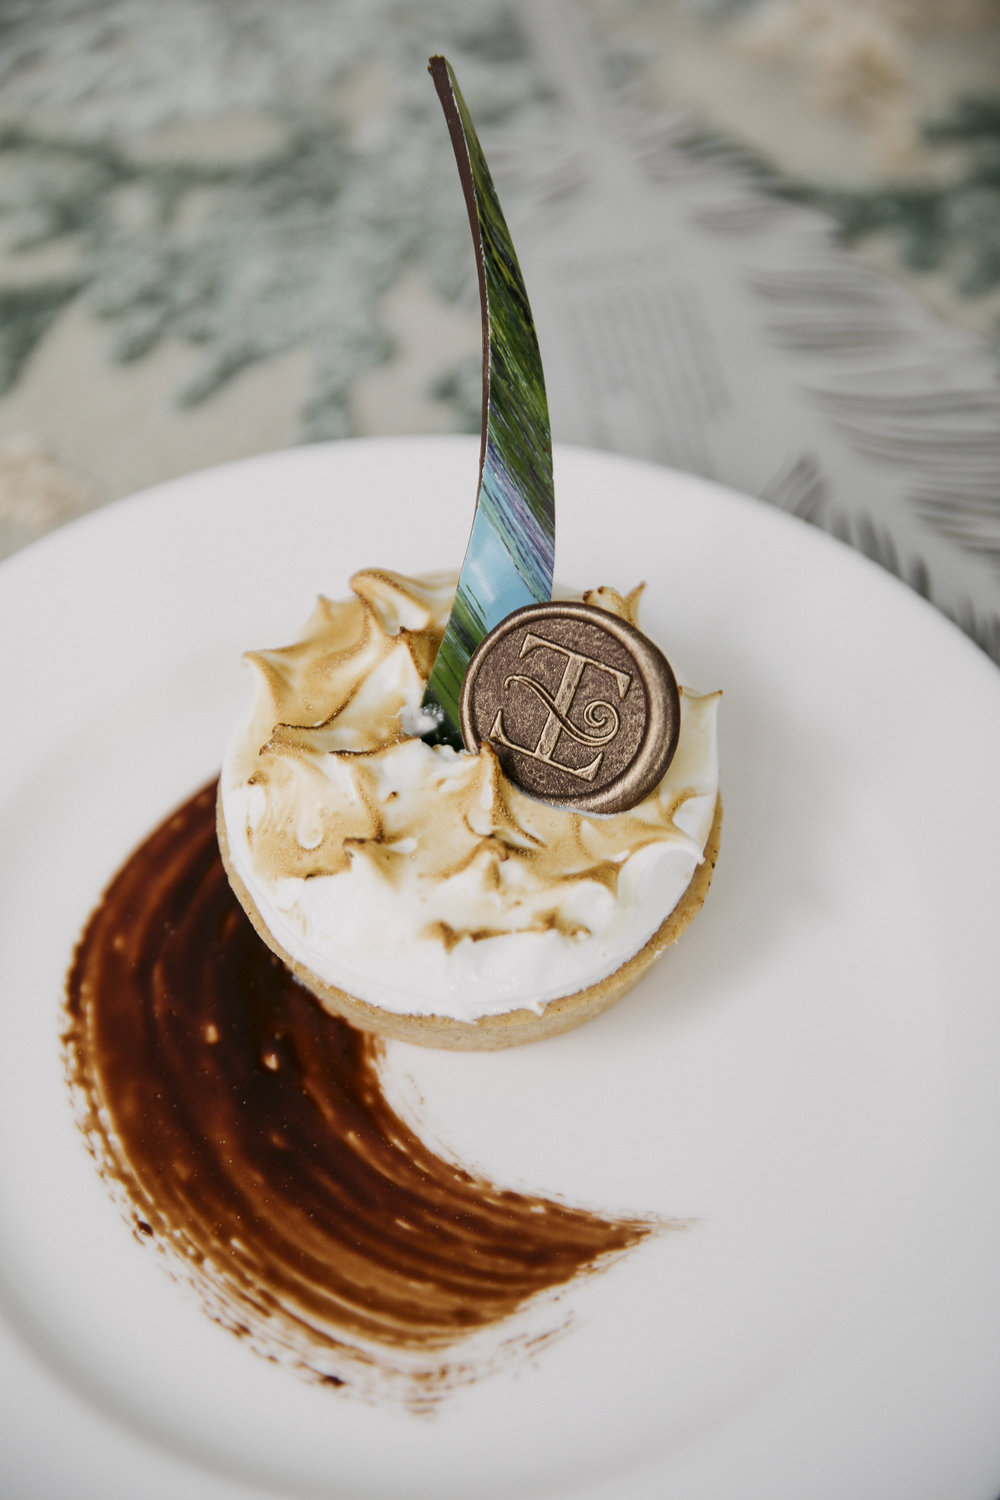 Because a S'Mores tart feels so right.  Photo by John Cain Sargent.